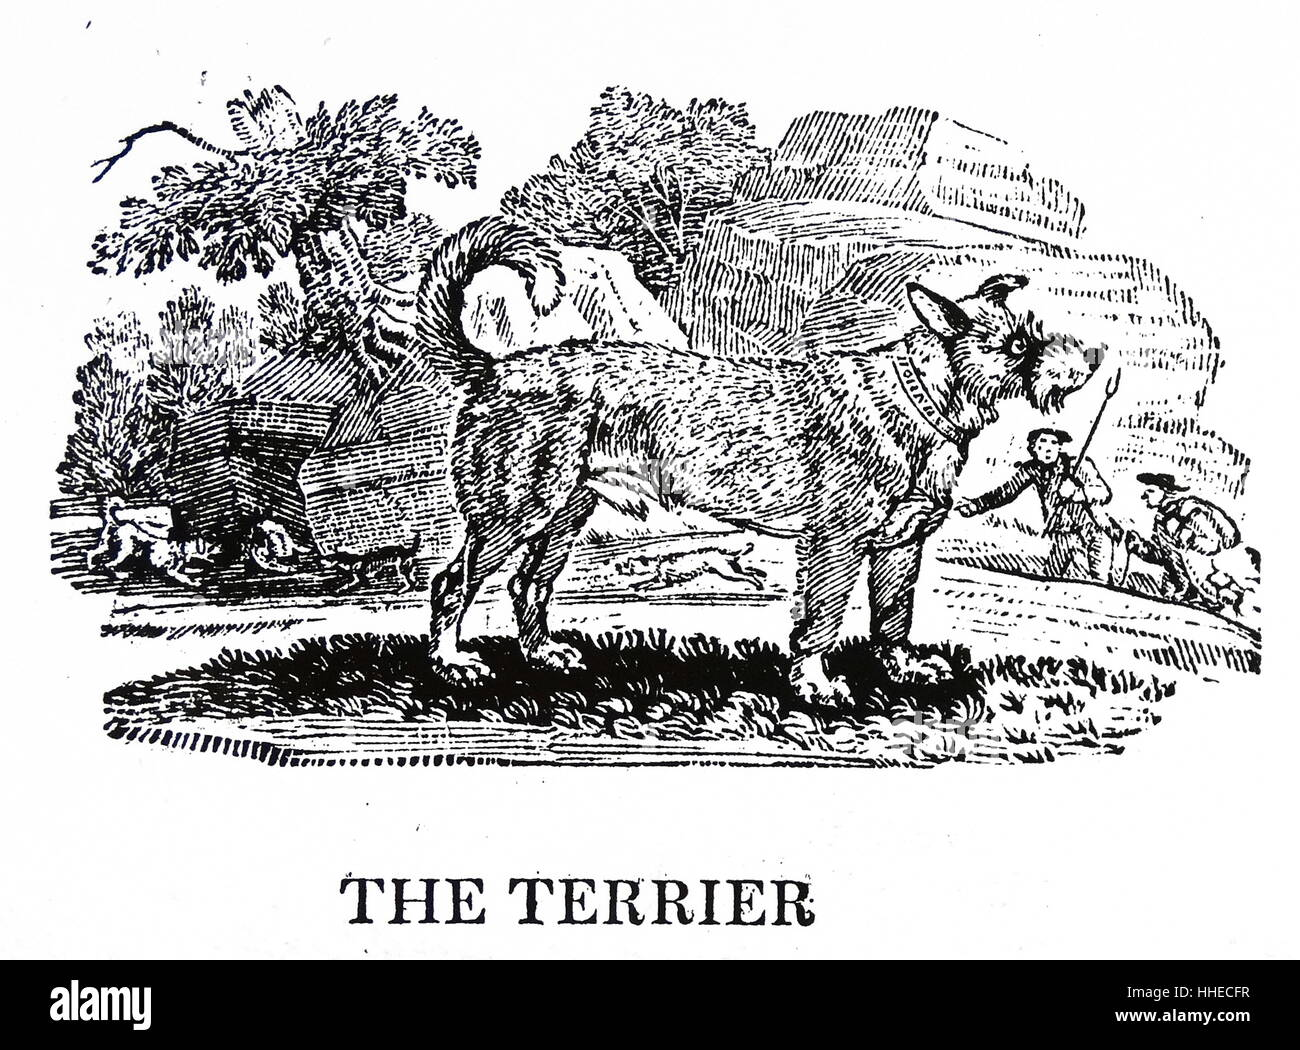 Terrier dog. From Thomas Bewick A General History of Quadrupeds, Newcastle upon Tyne, 1790. - Stock Image